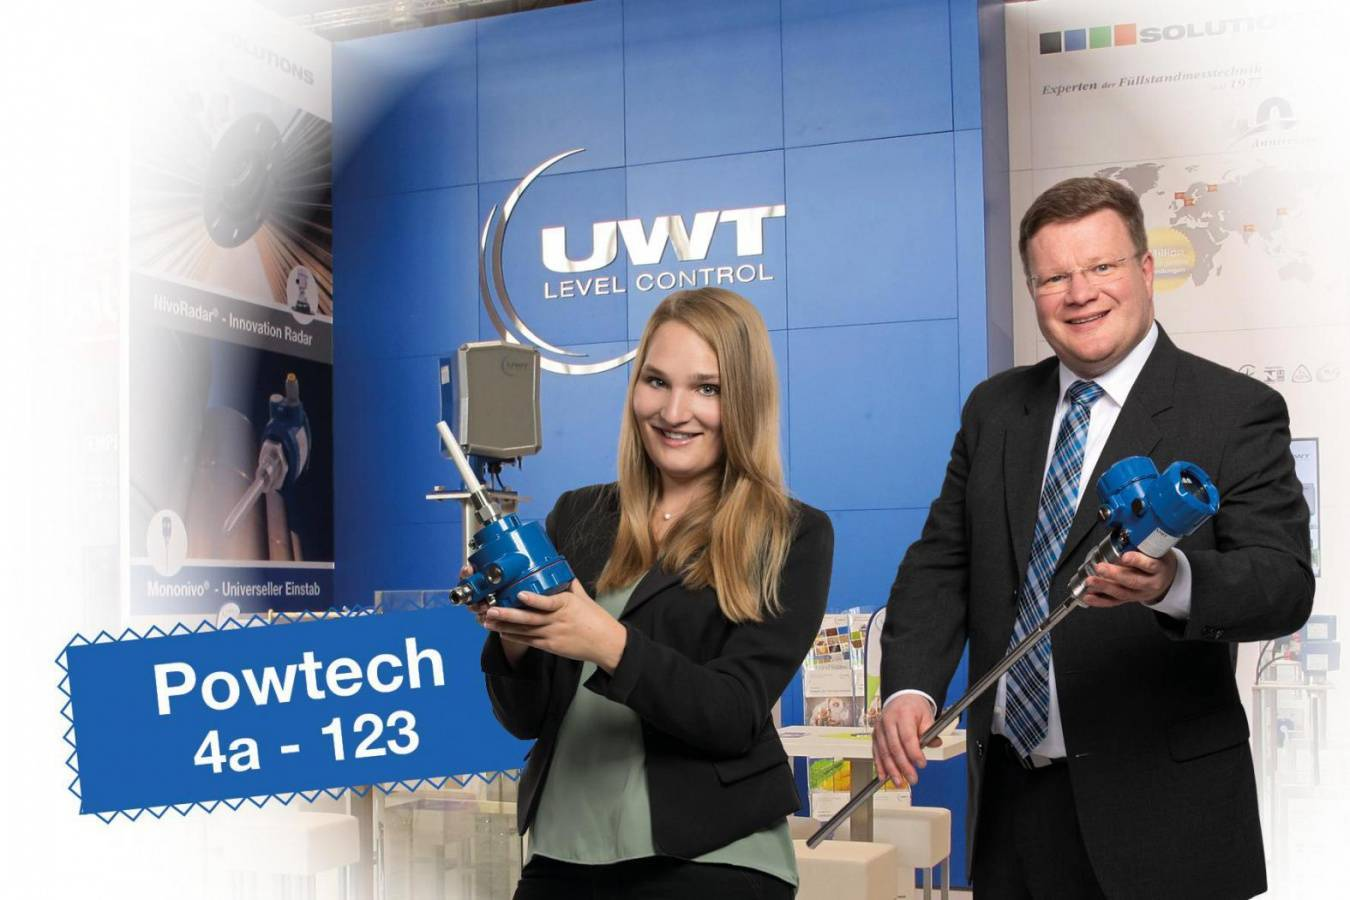 POWTECH 2019 – 3 eventful days await us UWT is looking forward to an exciting exhibition with lots of visitors and discussions